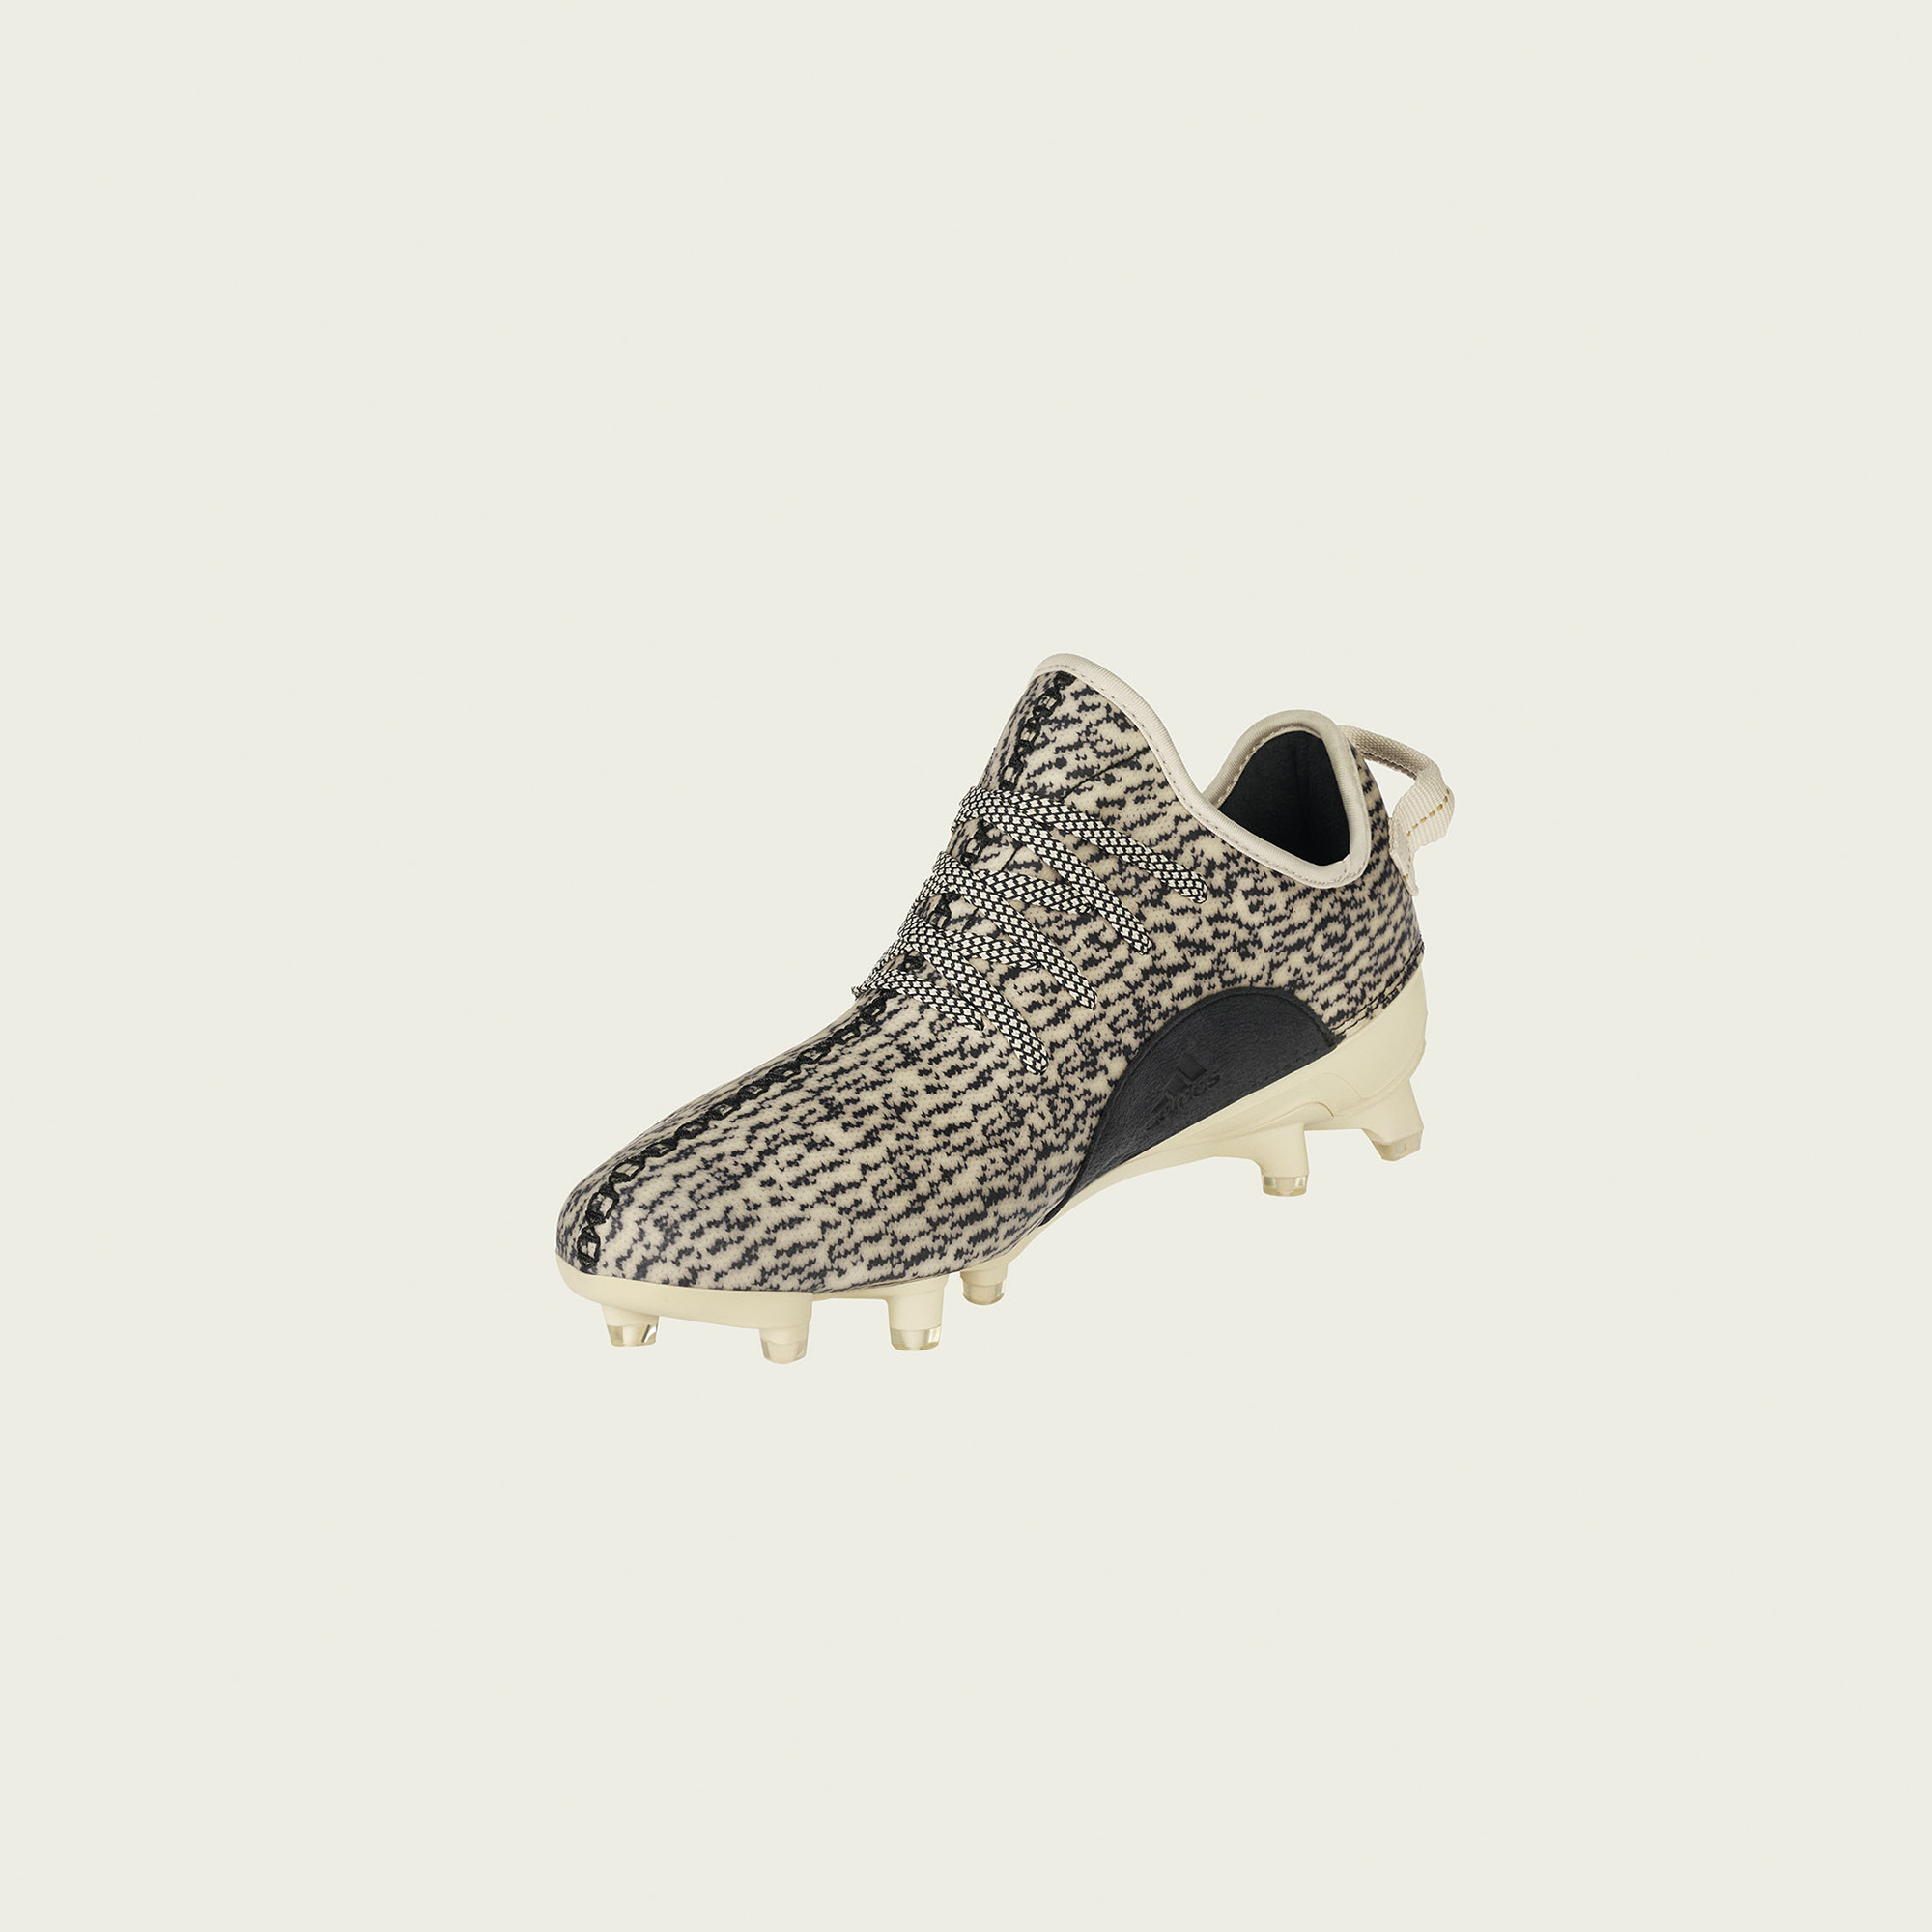 yeezy adidas football cleats